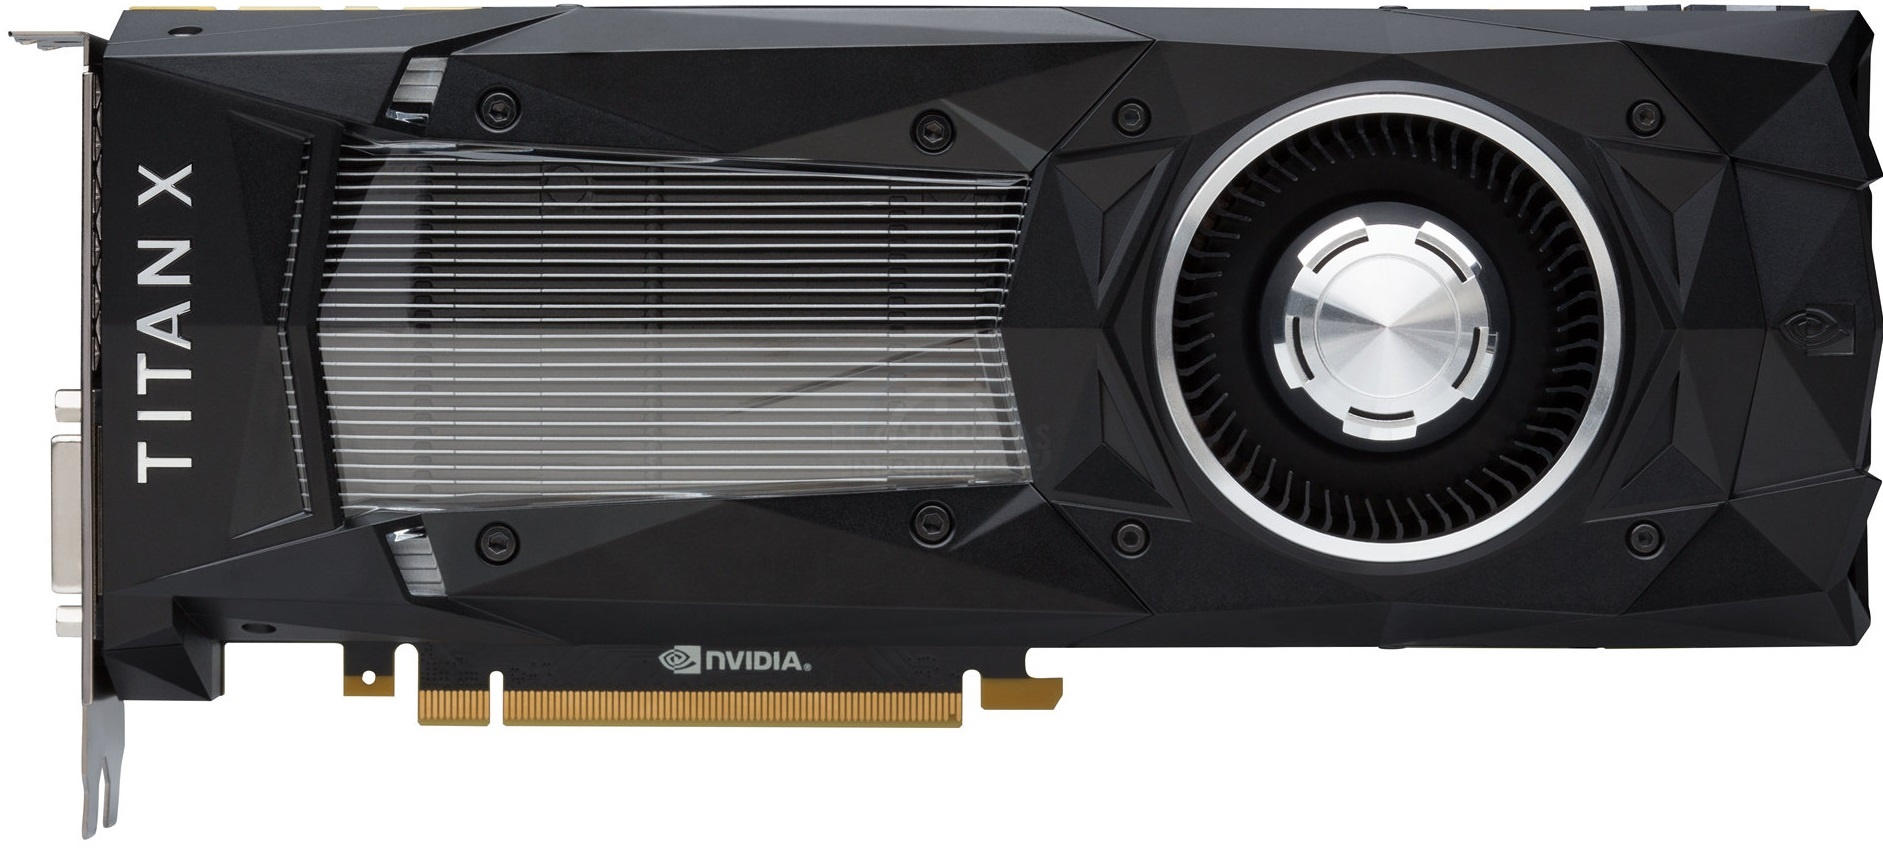 Nvidia GeForce TITAN X Pascal 1 - NVIDIA Titan X get the cheapest price